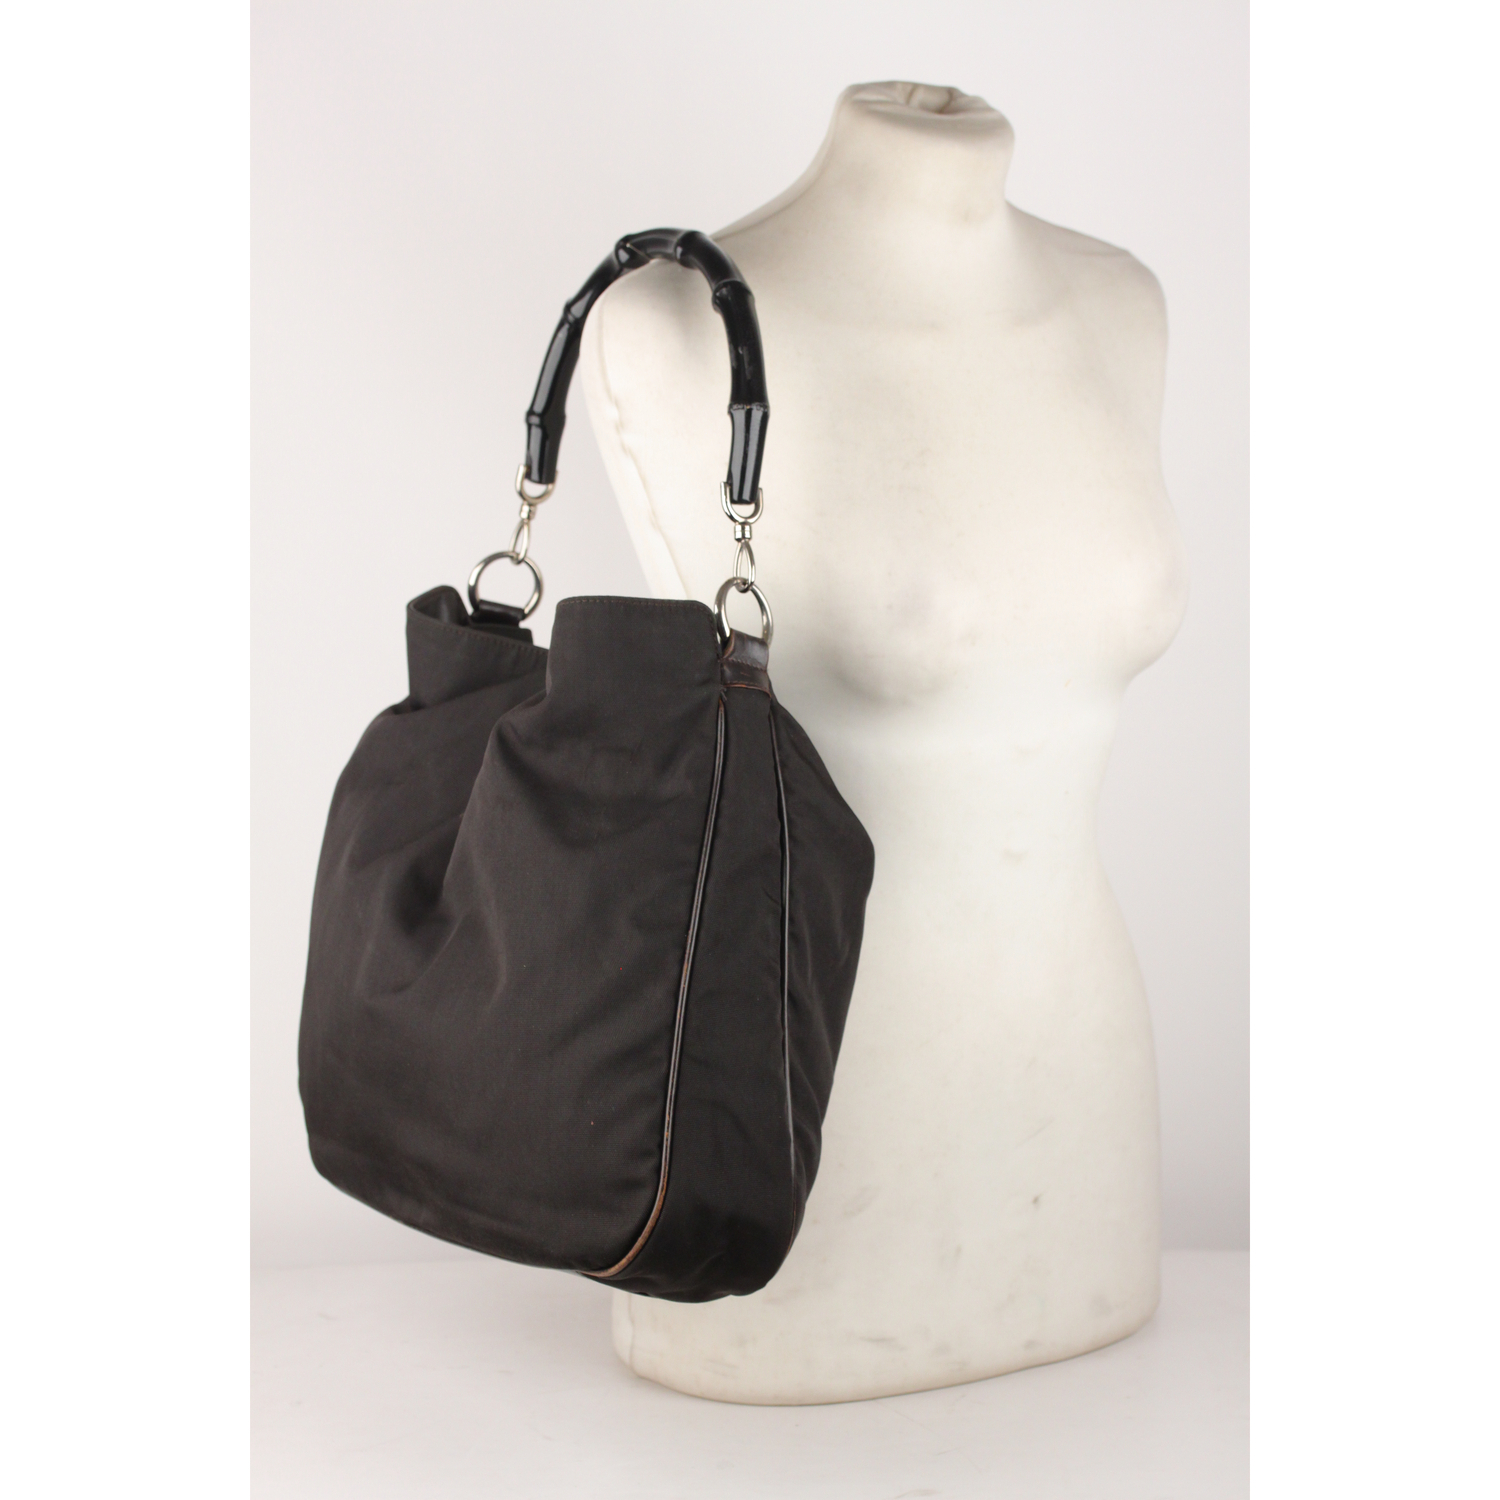 f952fe3357f E70a5aaa 9bd5 5b06 ad86 48ce97822e08. E70a5aaa 9bd5 5b06 ad86 48ce97822e08.  Previous. Authentic Gucci Black Canvas Hobo Shoulder Bag Tote Bamboo Handle